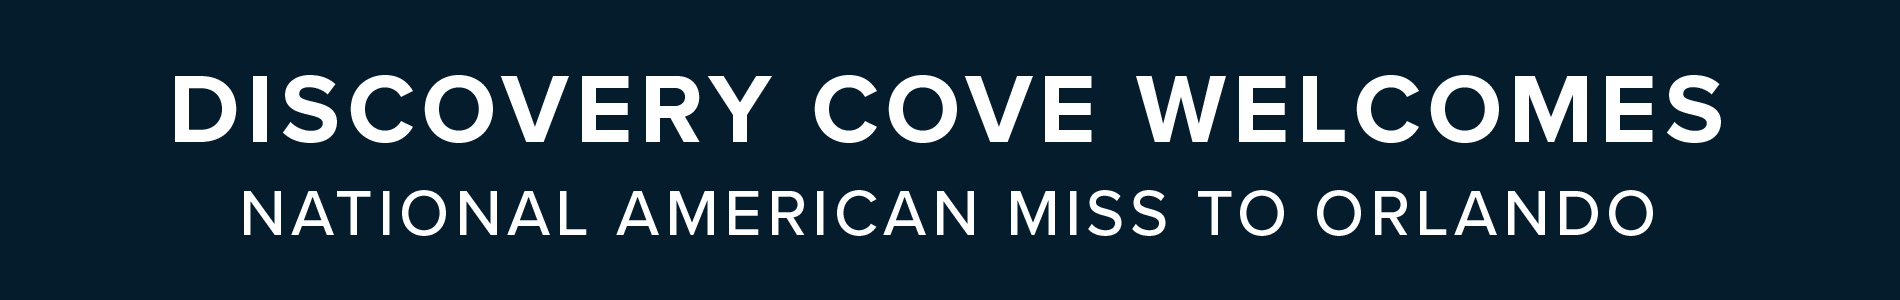 Discovery Cove Welcomes National American Miss